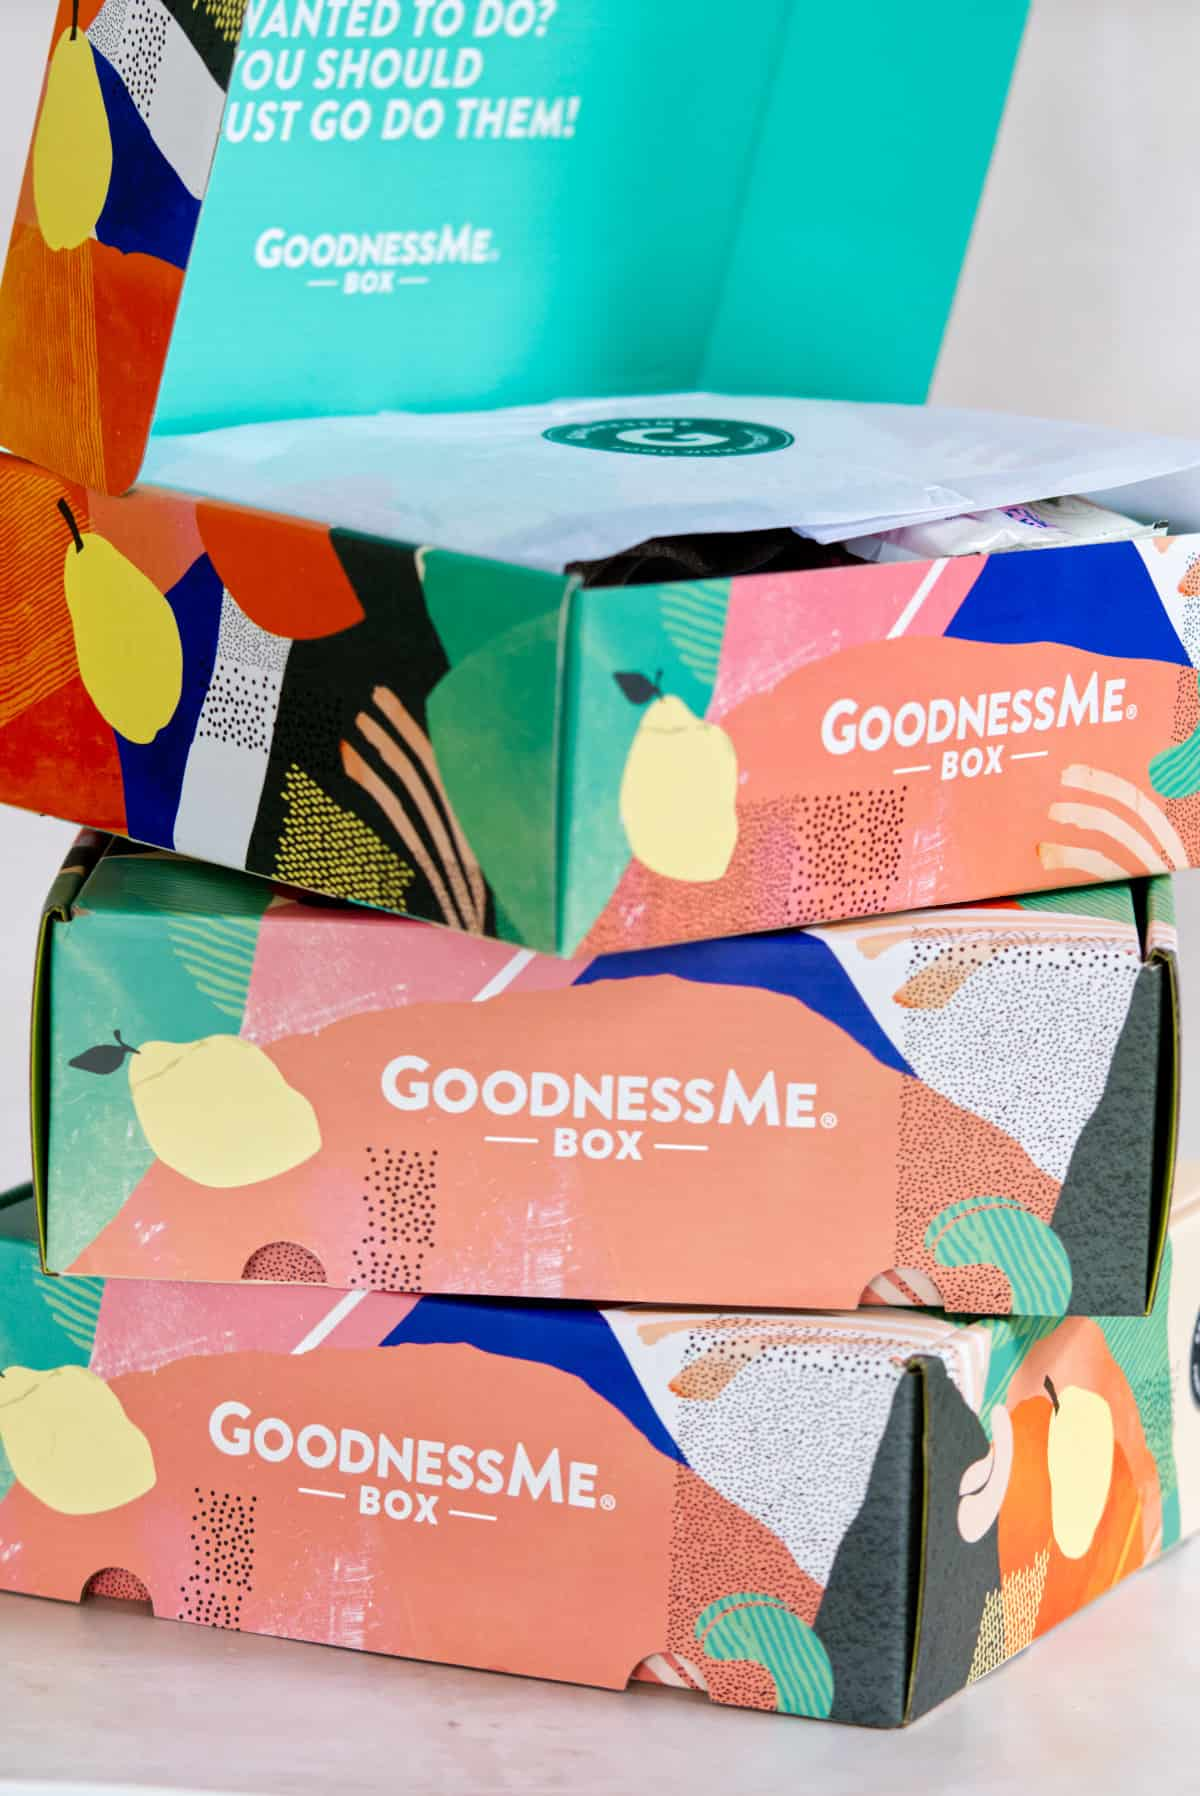 3 x GoodnessMe Australian Subscription Box boxes stacked on top of each other